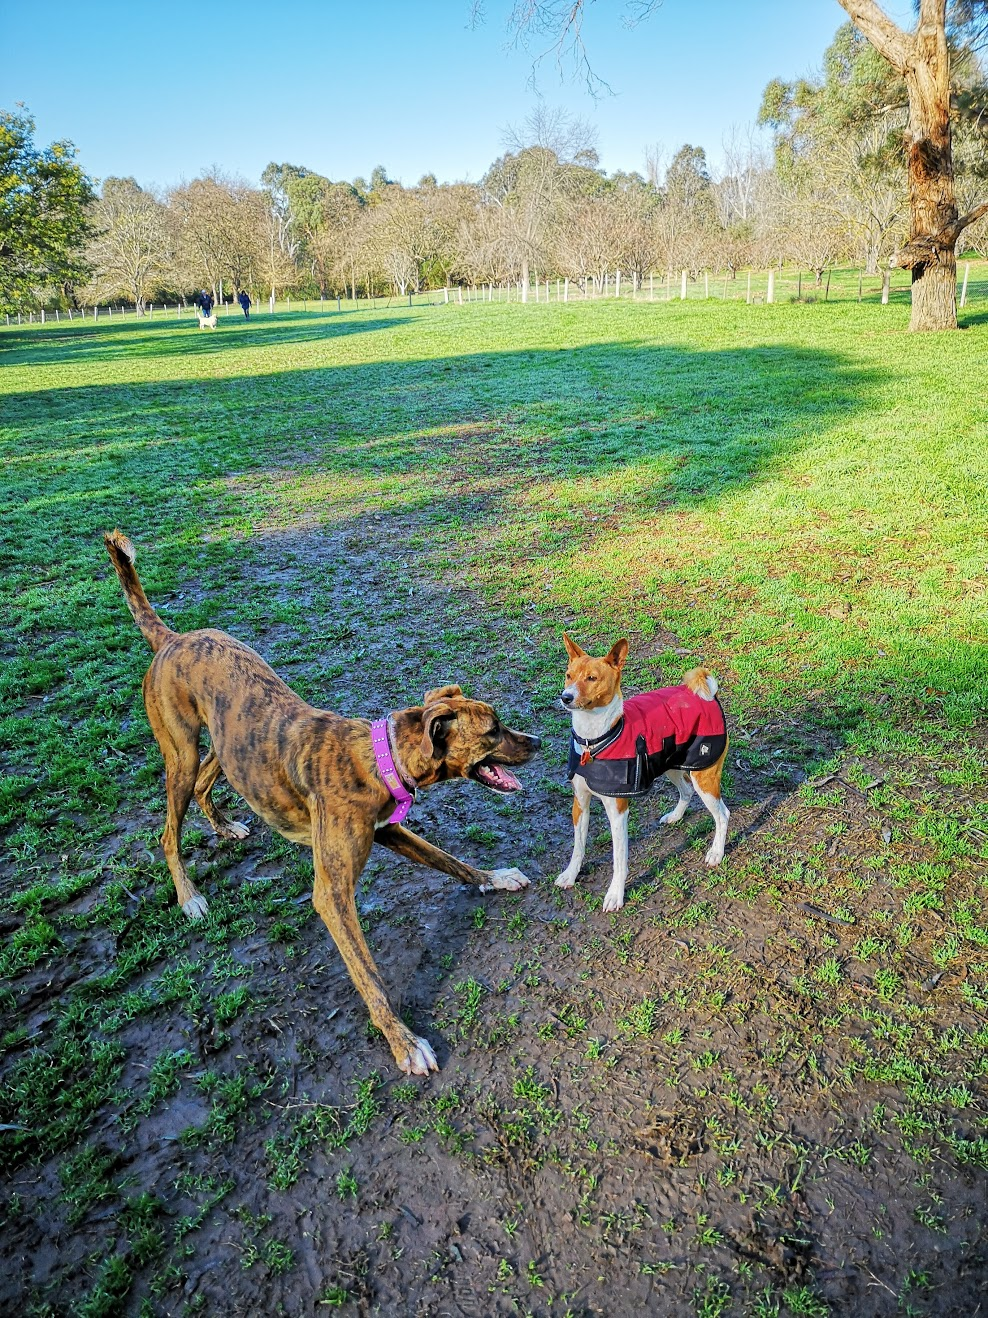 Our dog meets new friends at park. gallery image